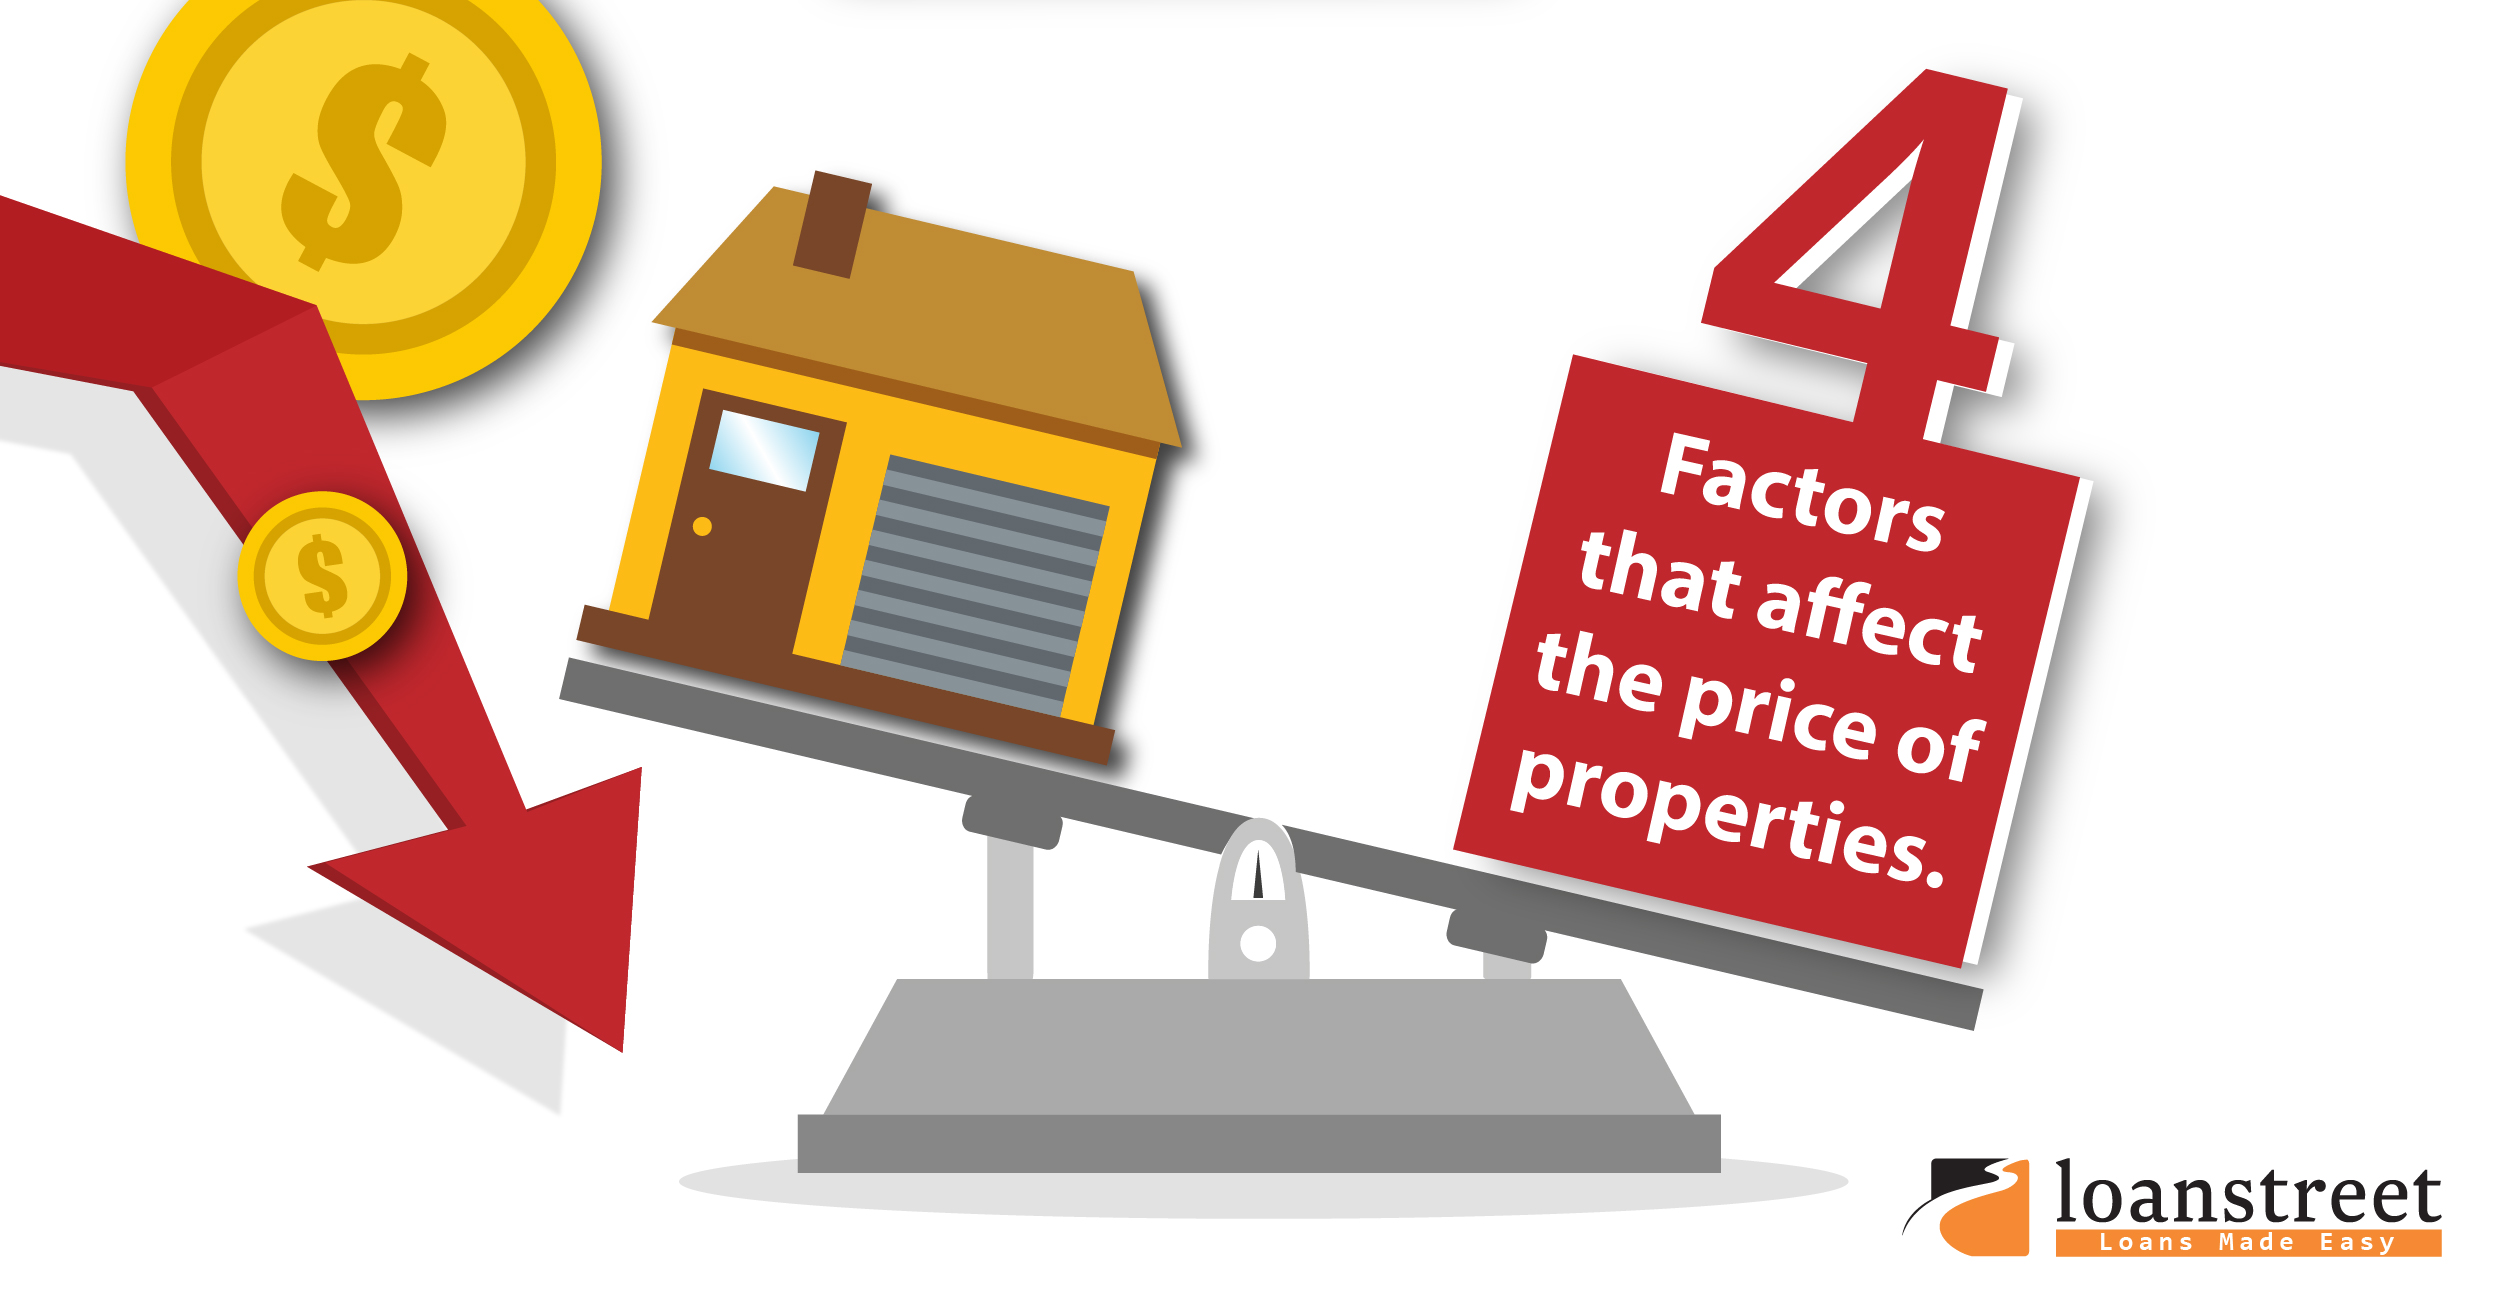 factors affecting property price, leasehold vs freehold